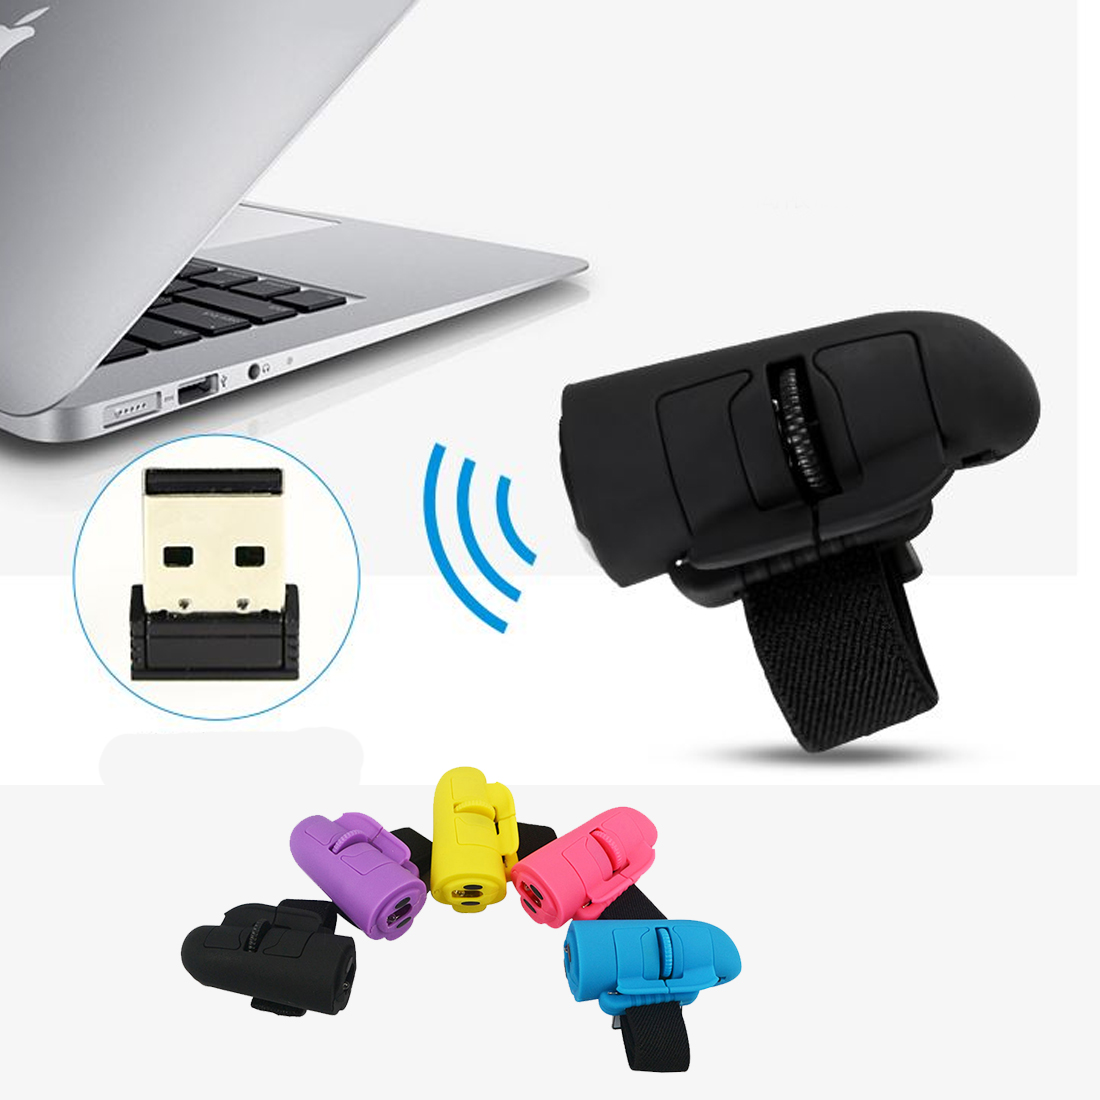 NOYOKERE Universal 2.4GHz USB Wireless Finger Rings Optical Mouse 1200Dpi For All Notebook Laptop Tablet Desktop PC 2 4ghz 1200dpi usb 2 0 wireless optical mouse for pc laptop notebook